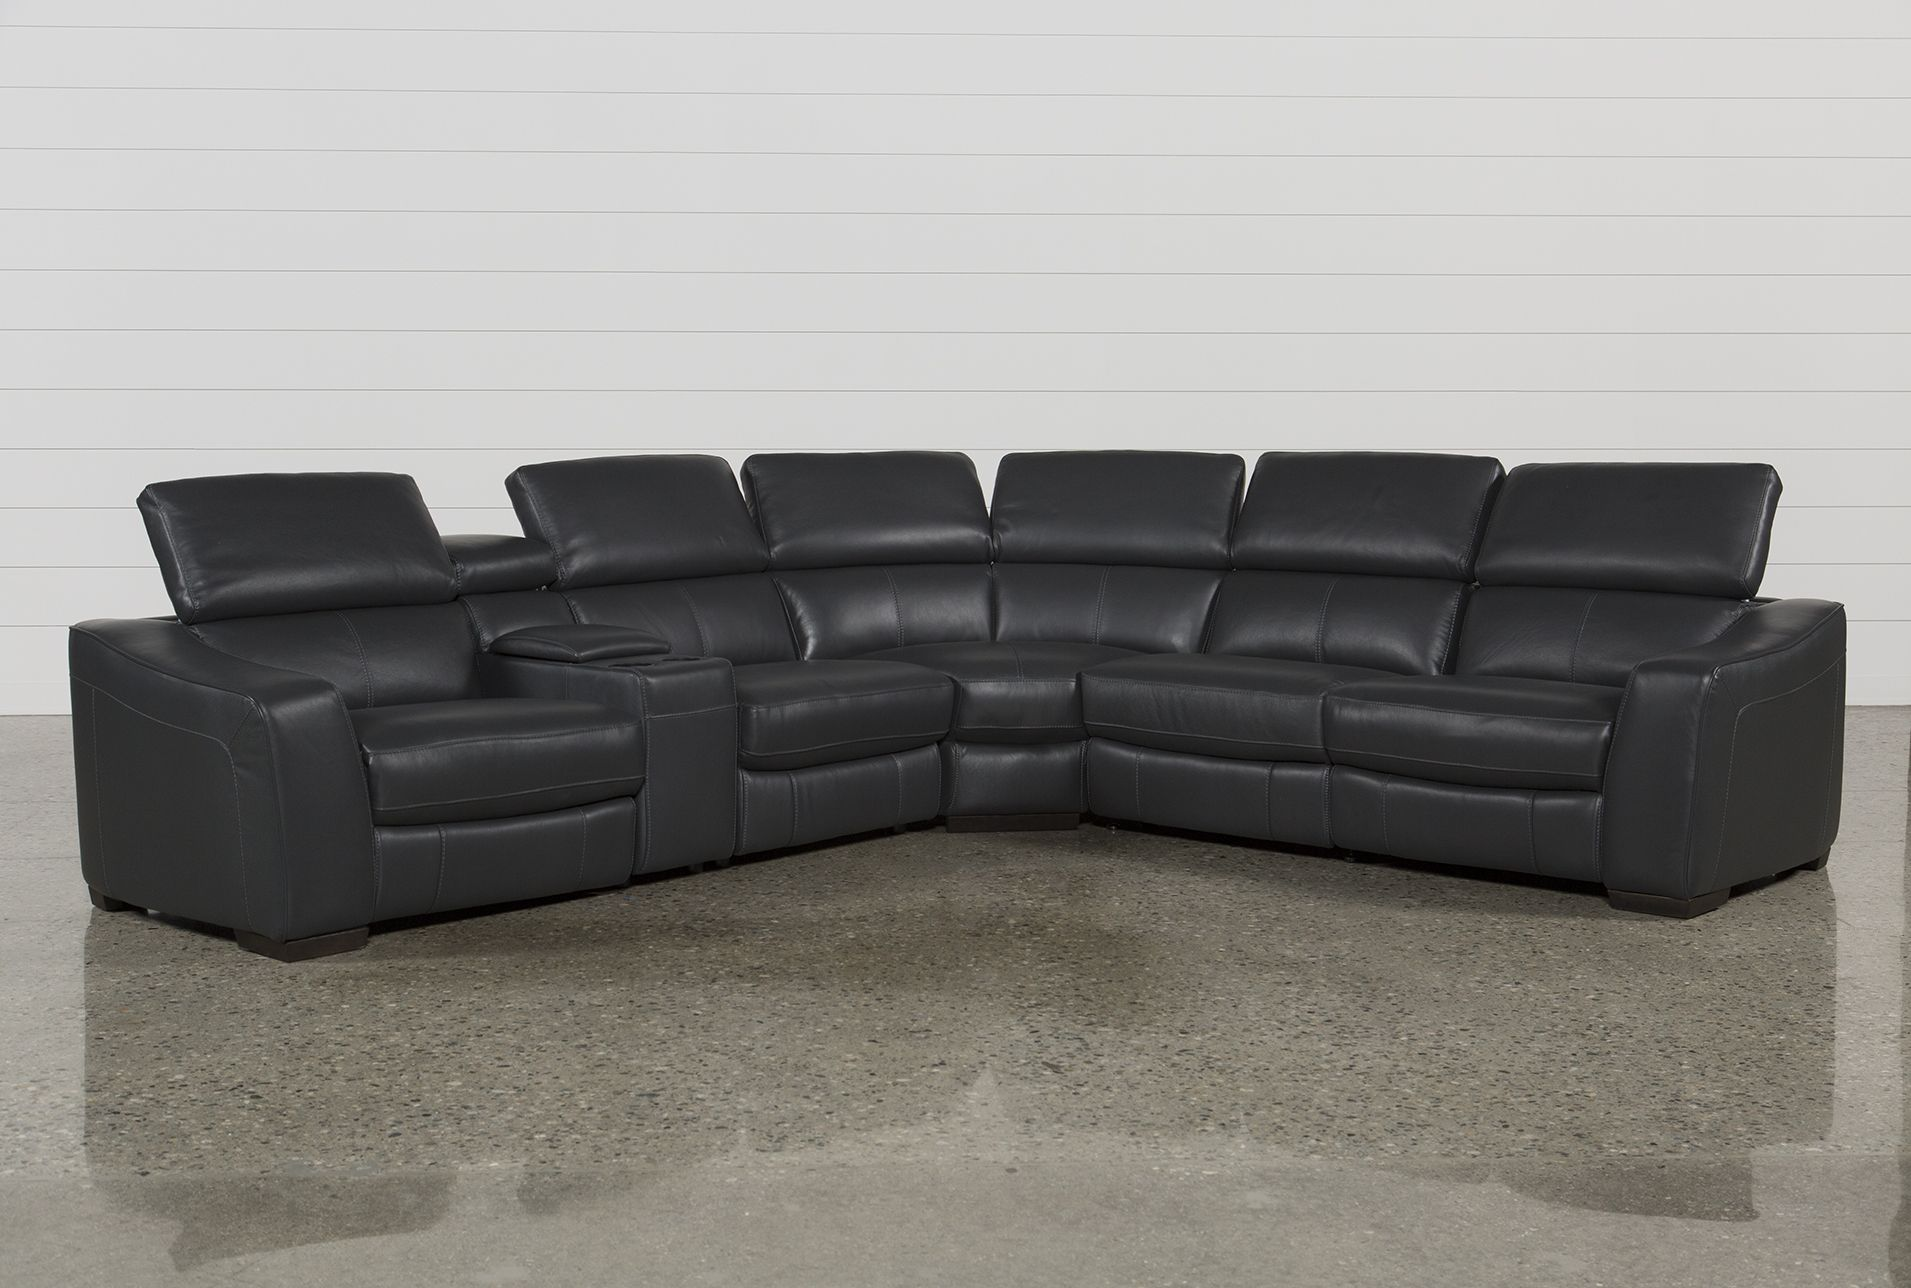 kristen slate grey 6 piece power reclining sectional products rh pinterest com